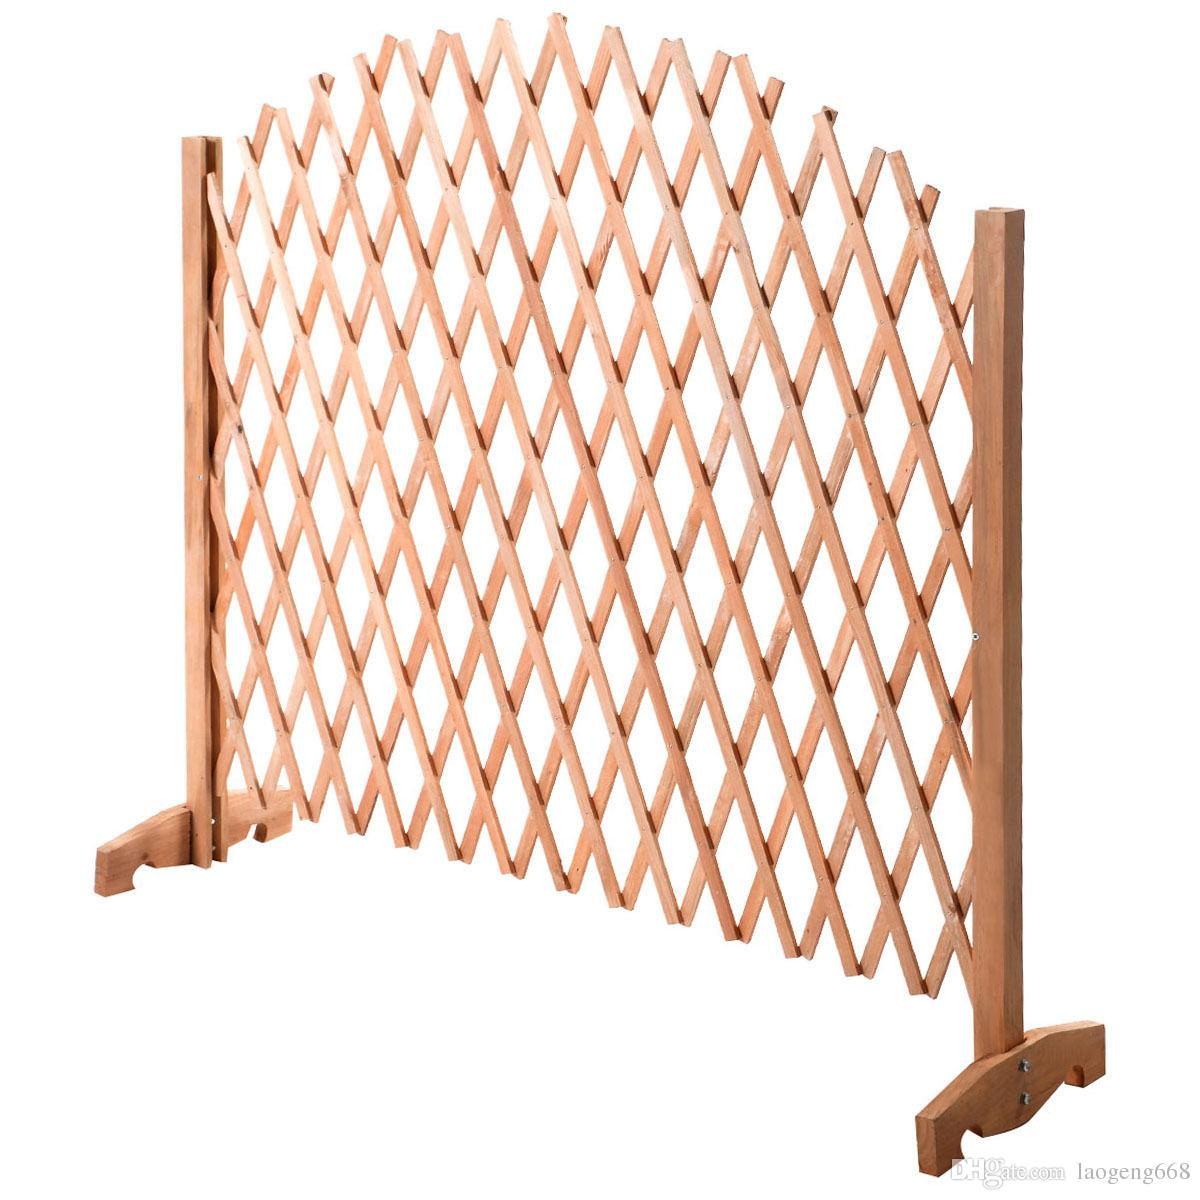 2018 Expanding Portable Fence Wooden Screen Kid Patio Garden Lawn Dog Gate  Pet Safety From Laogeng668, $22.11 | Dhgate.Com